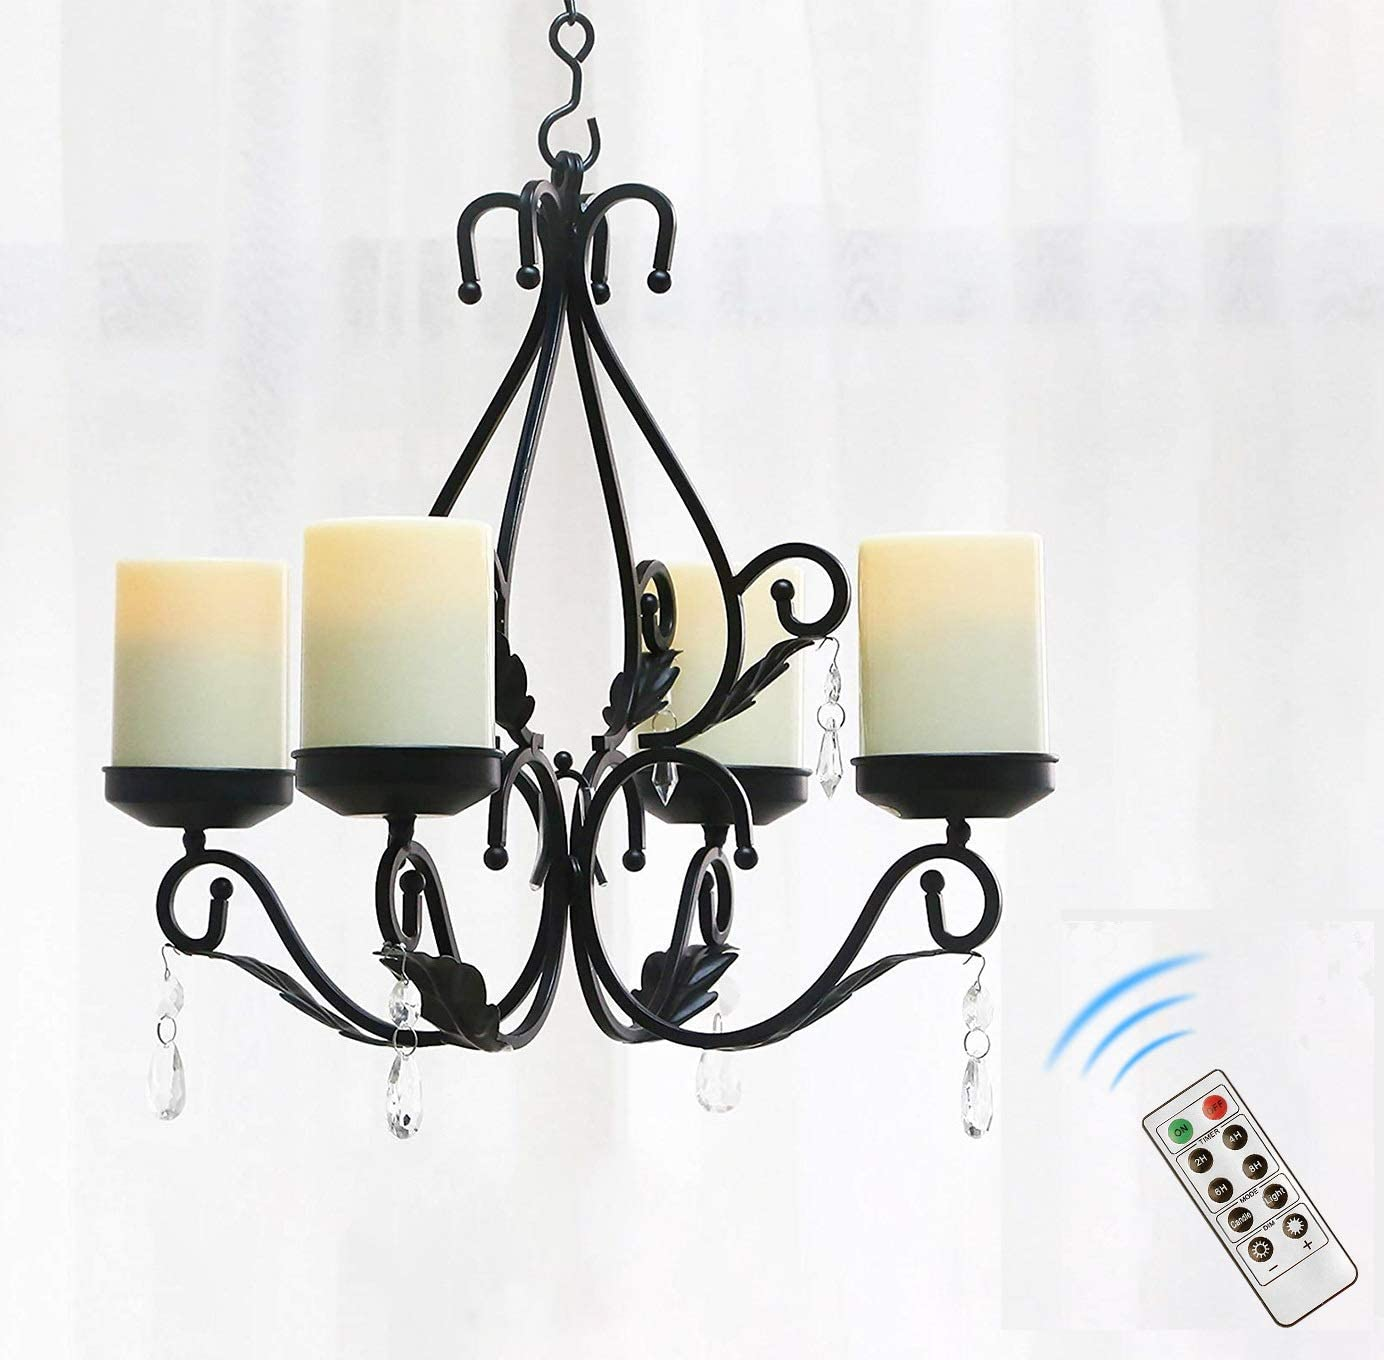 Giveu 3 In 1 Lighting Chandelier With 4pcs Battery Operated Led Candle With Remote Table Centerpiece For Indoor Or Outdoor Gazebo Patio Decoration Black Home Kitchen